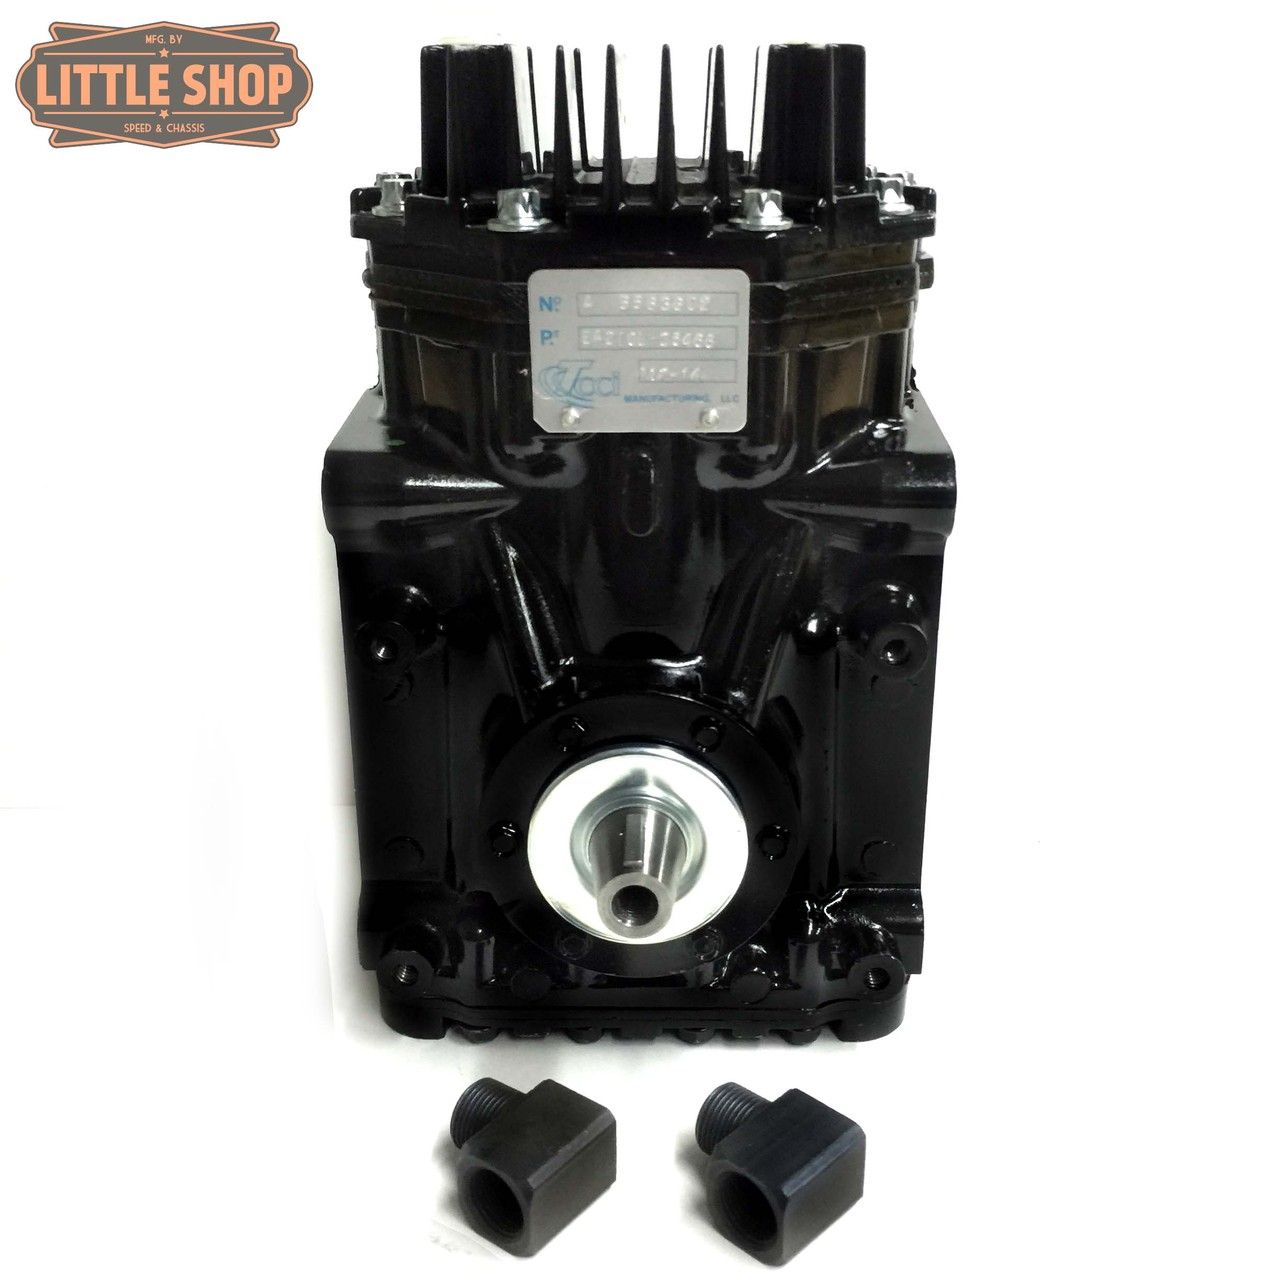 LSMFG-LT-SLM 14'-UP GM 5.3, 6.2 LT Engine Driven Compressor Kit (same kit as EDC kit but with upgraded SLM compressor)